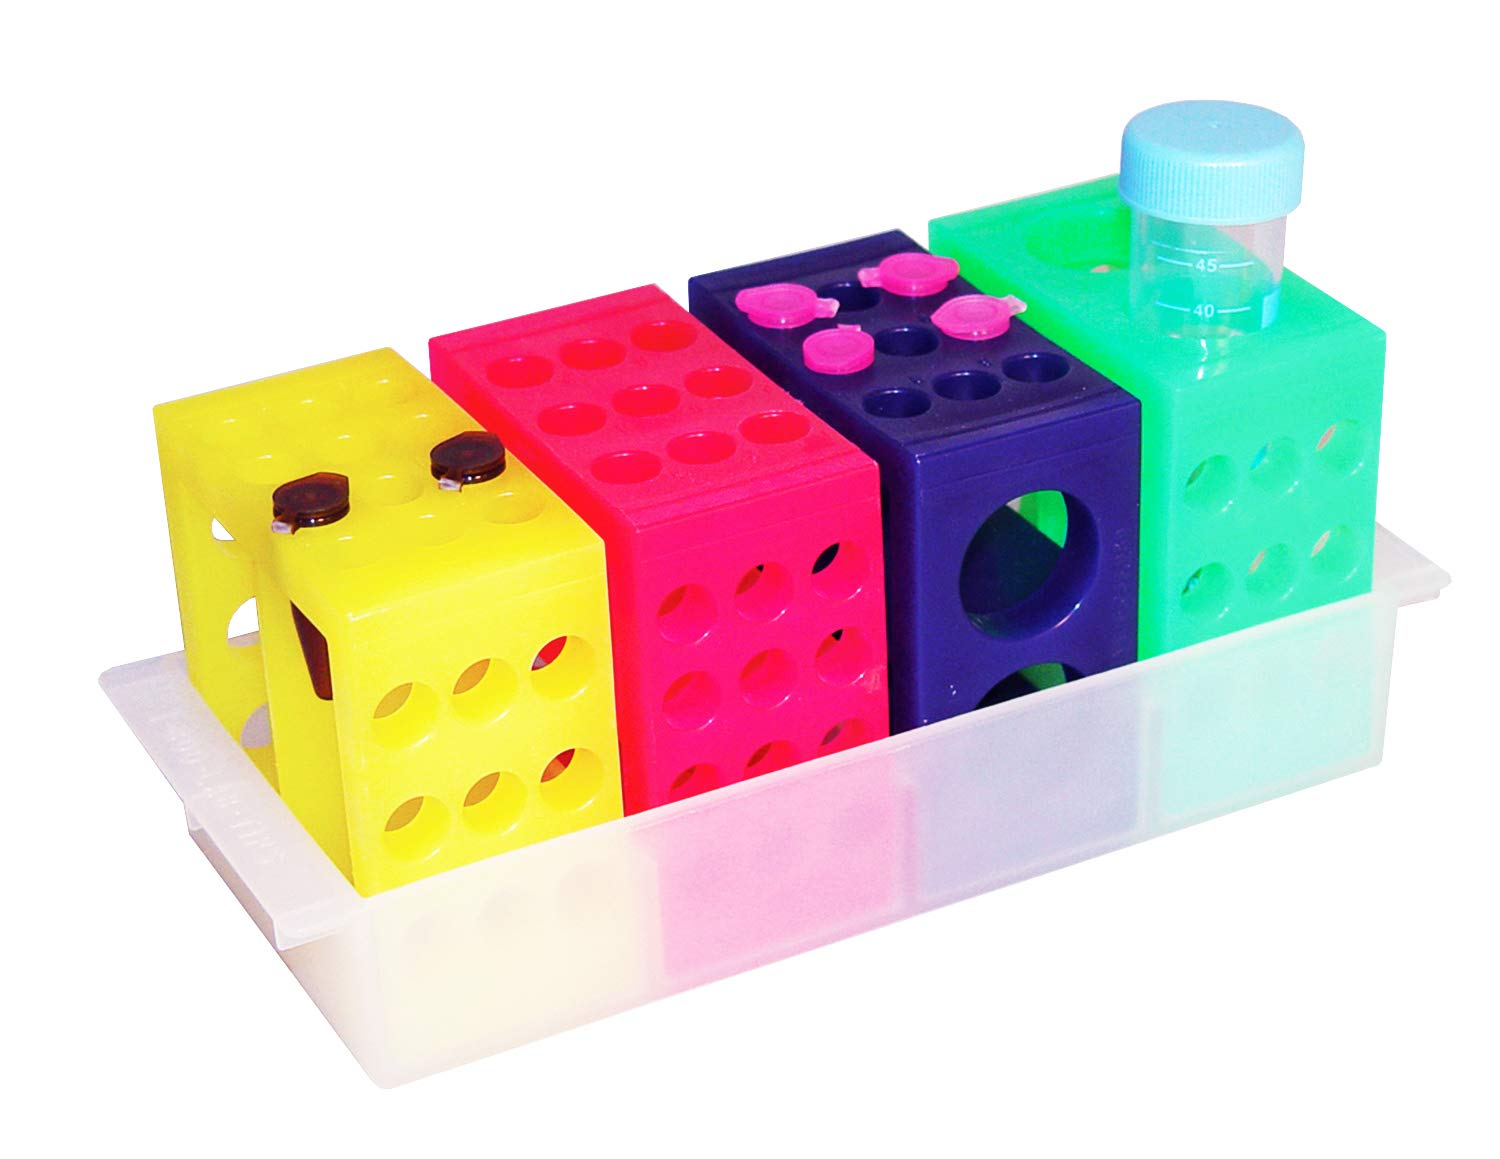 Tube Cube Test depot Support System Colors Fluorescent trend rank